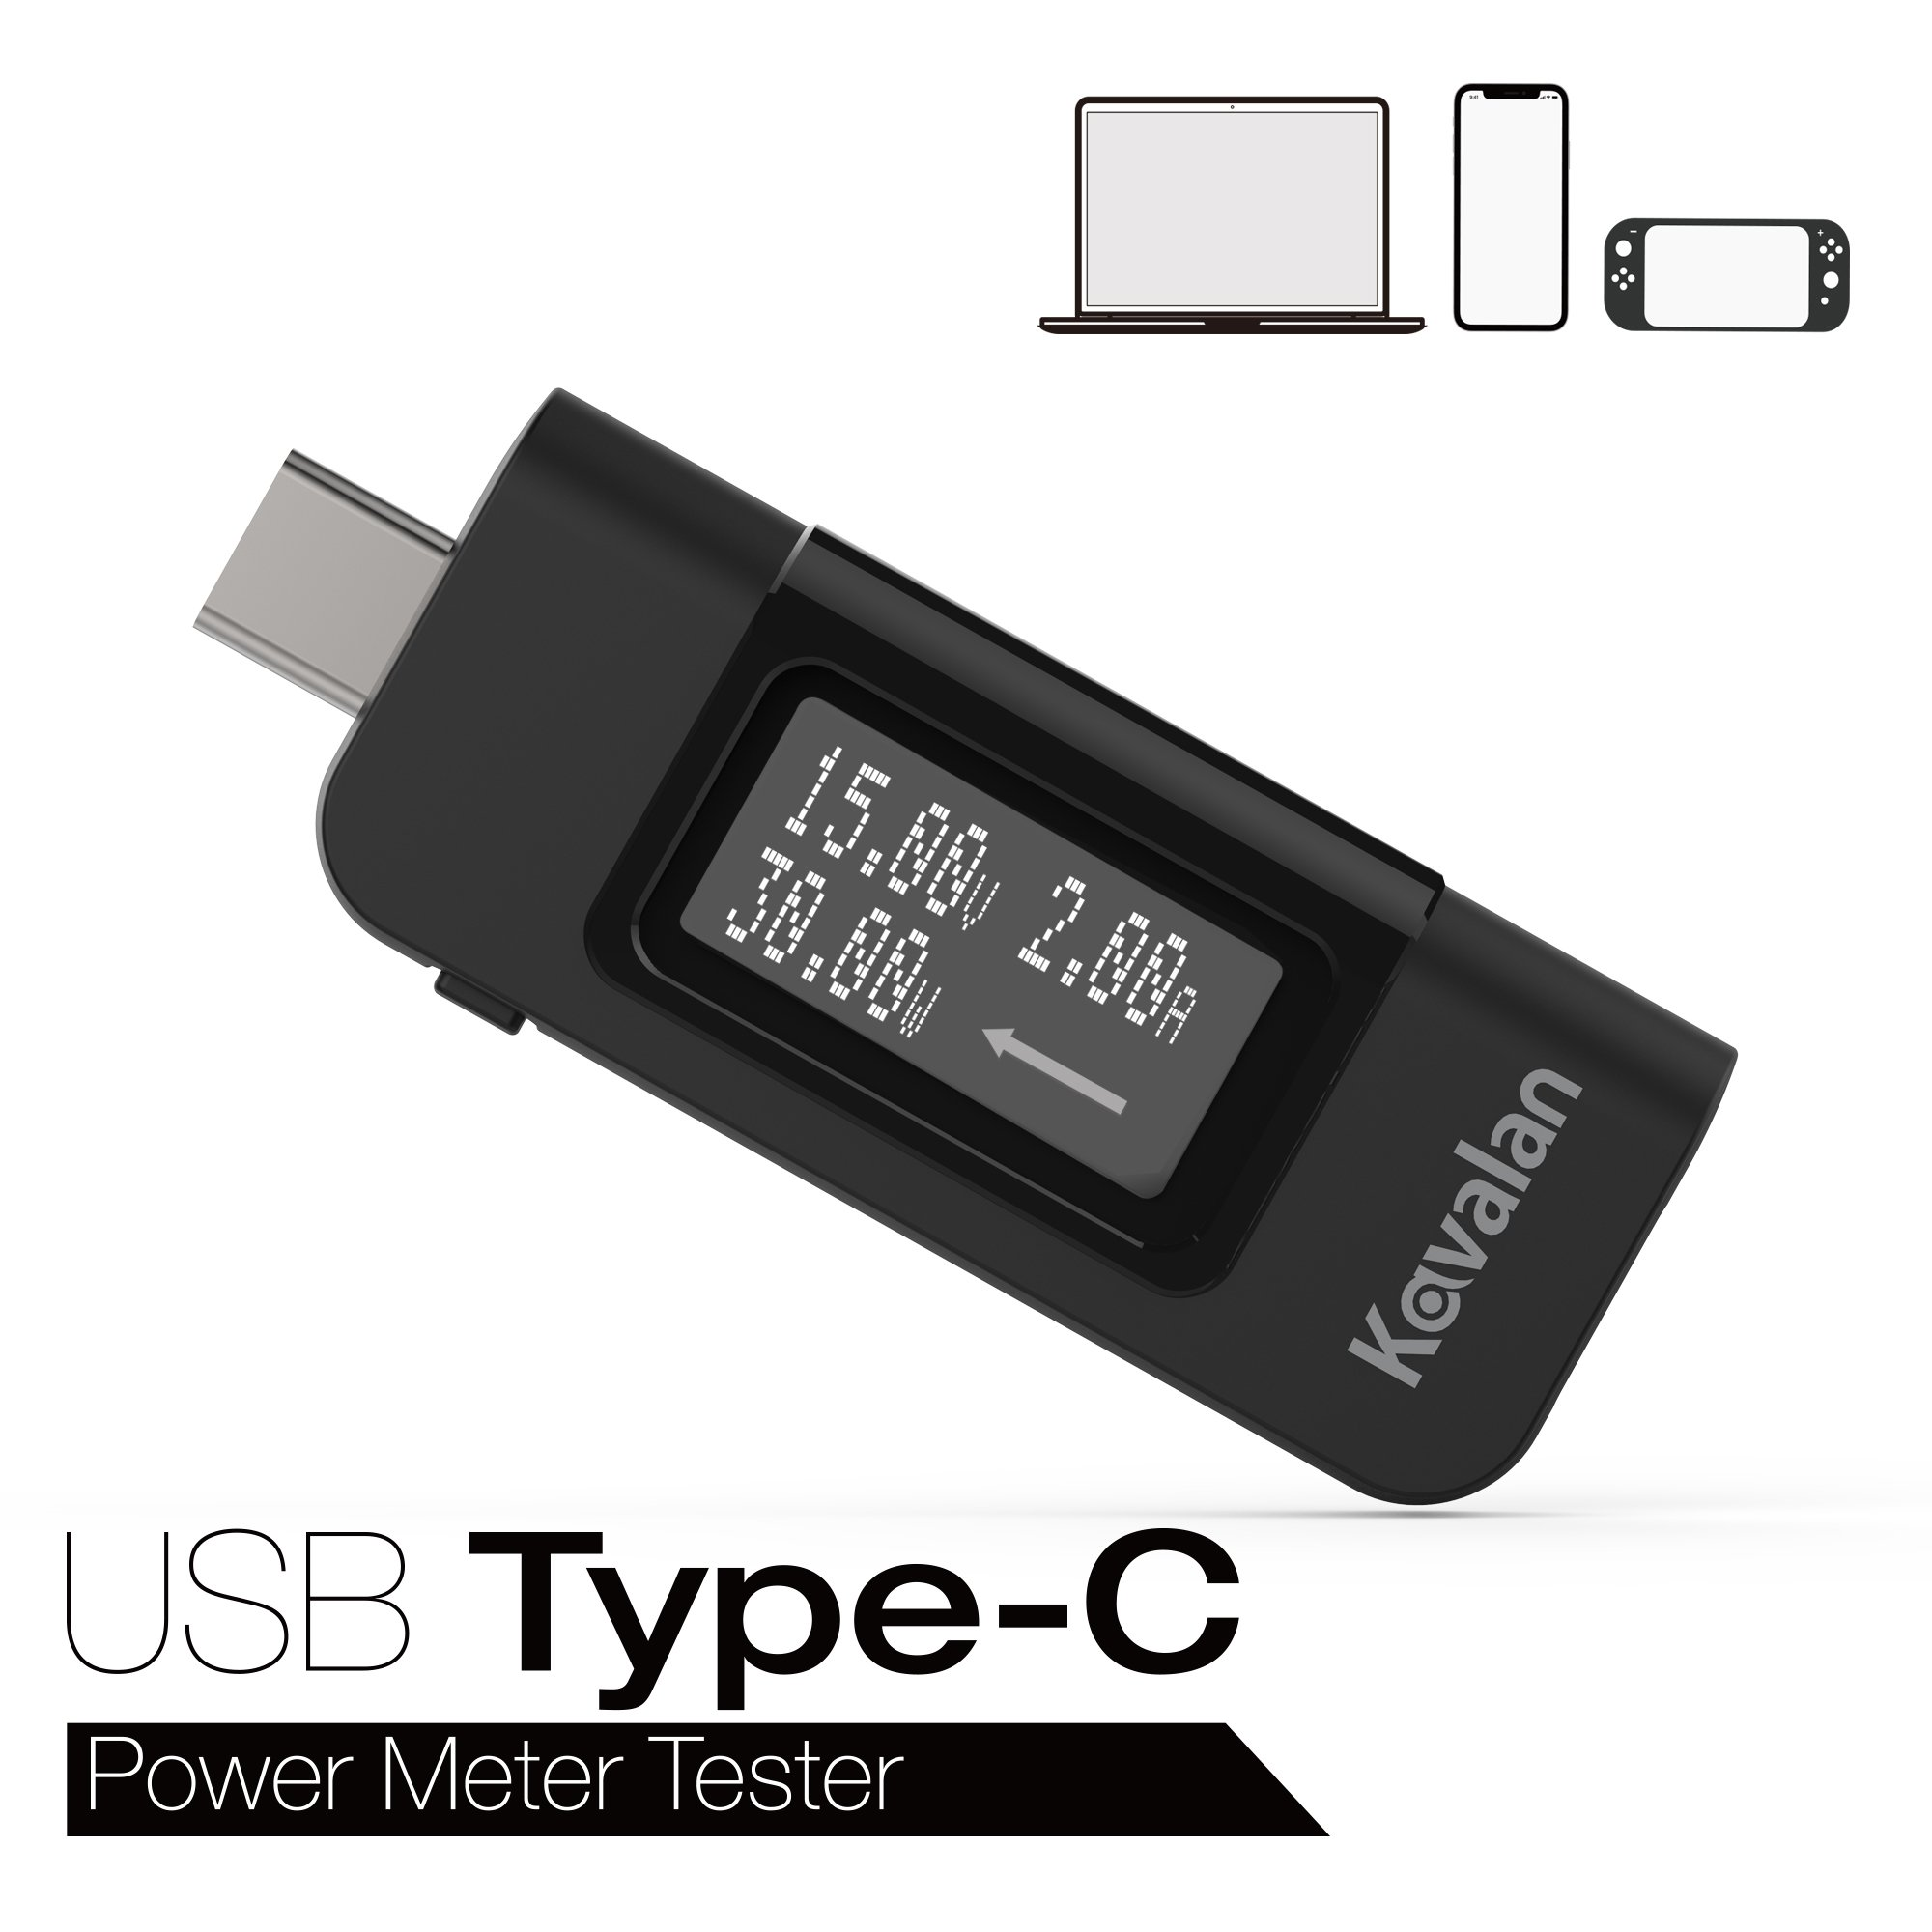 Kavalan USB Type-C Power Meter, Multimeter Charging Tester Monitor Volts, Amps and Watts, Bi-direction Indicator with Display Flip Button for New MacBook Pro, MacBook & any Type C Devices & Chargers